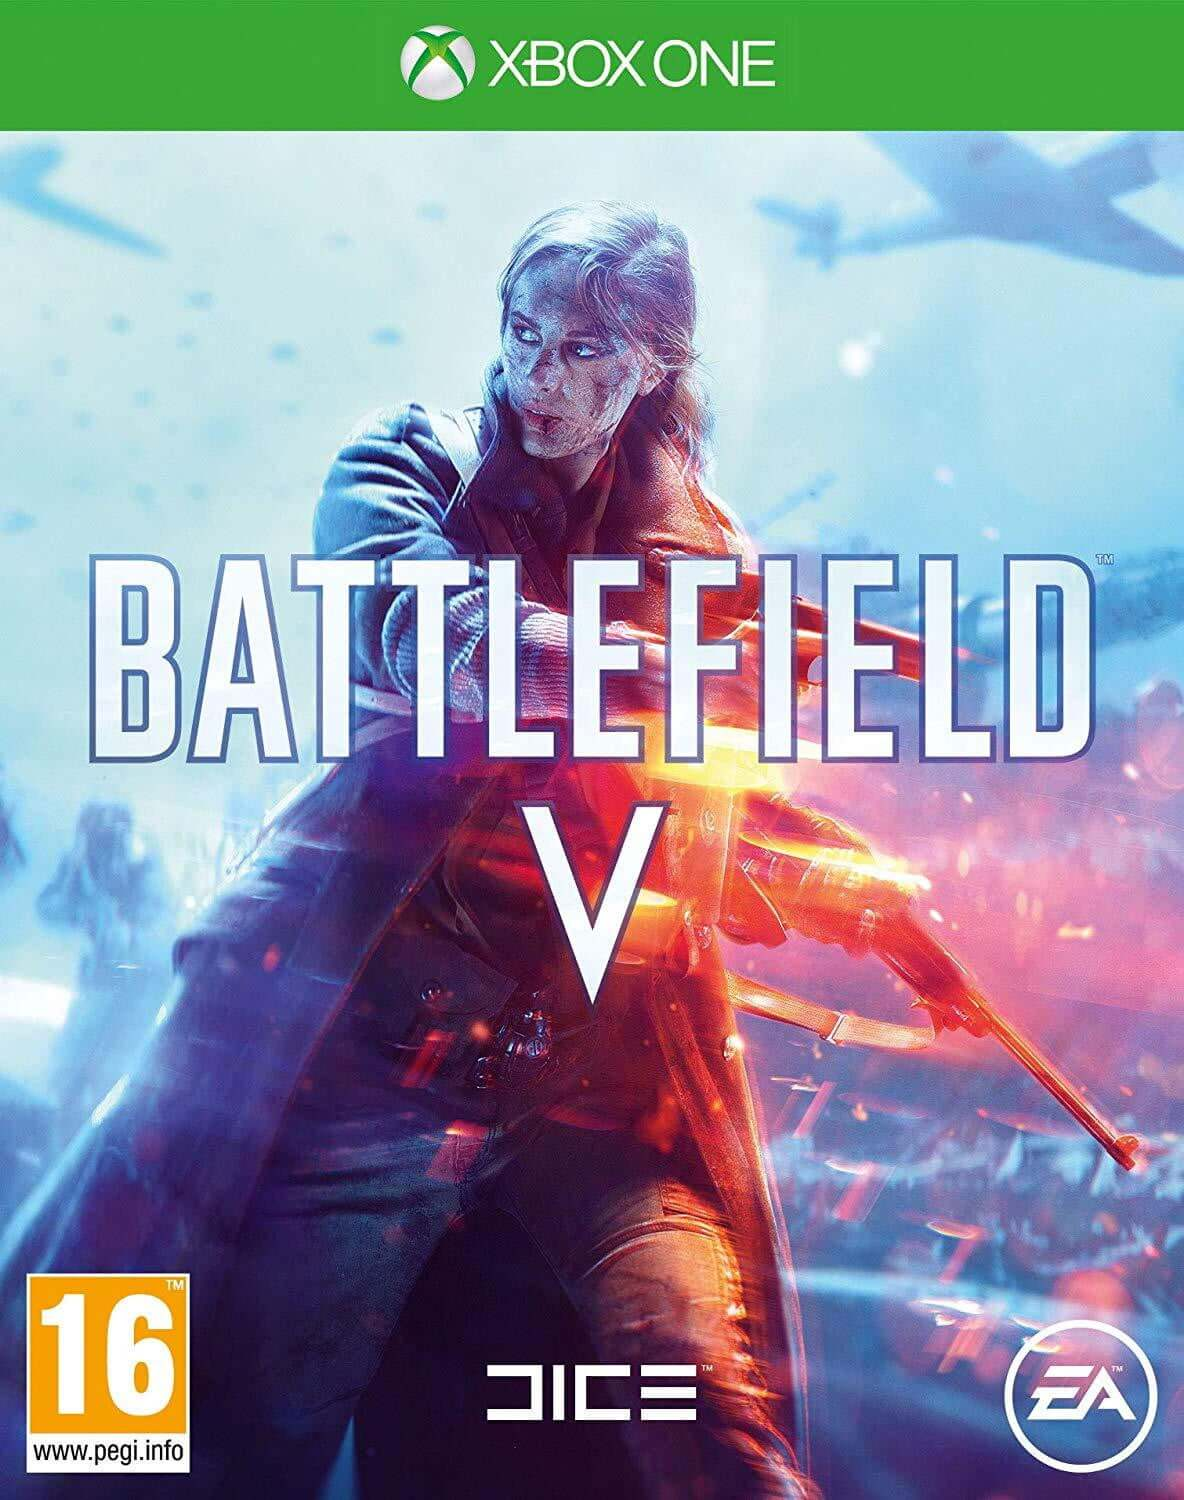 Buy Battlefield V (XBOX ONE) XBOX ONE in Egypt - Shamy Stores